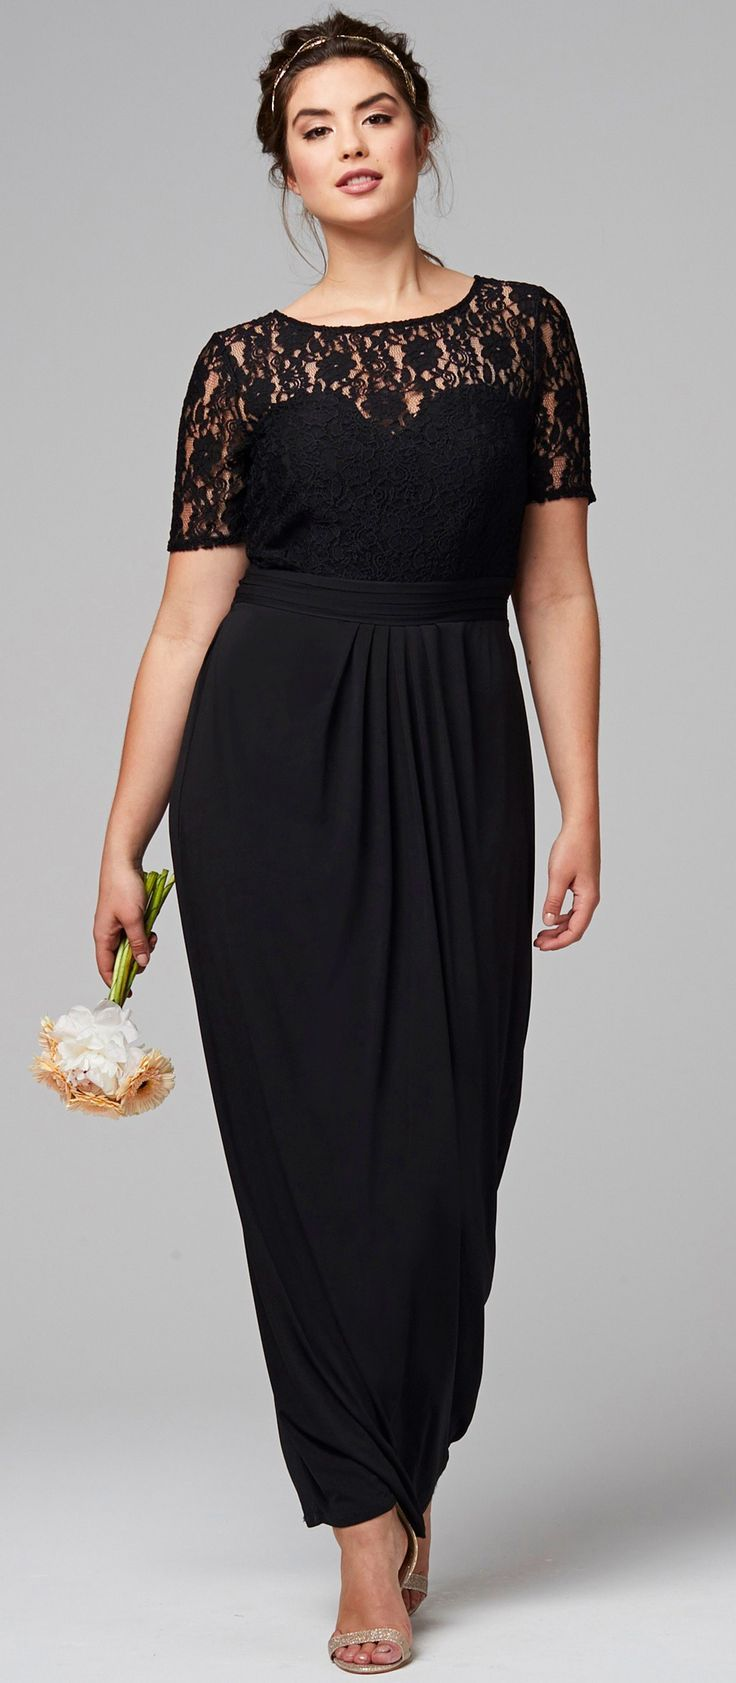 35123 Best Images About Plus Size Fashion On Pinterest